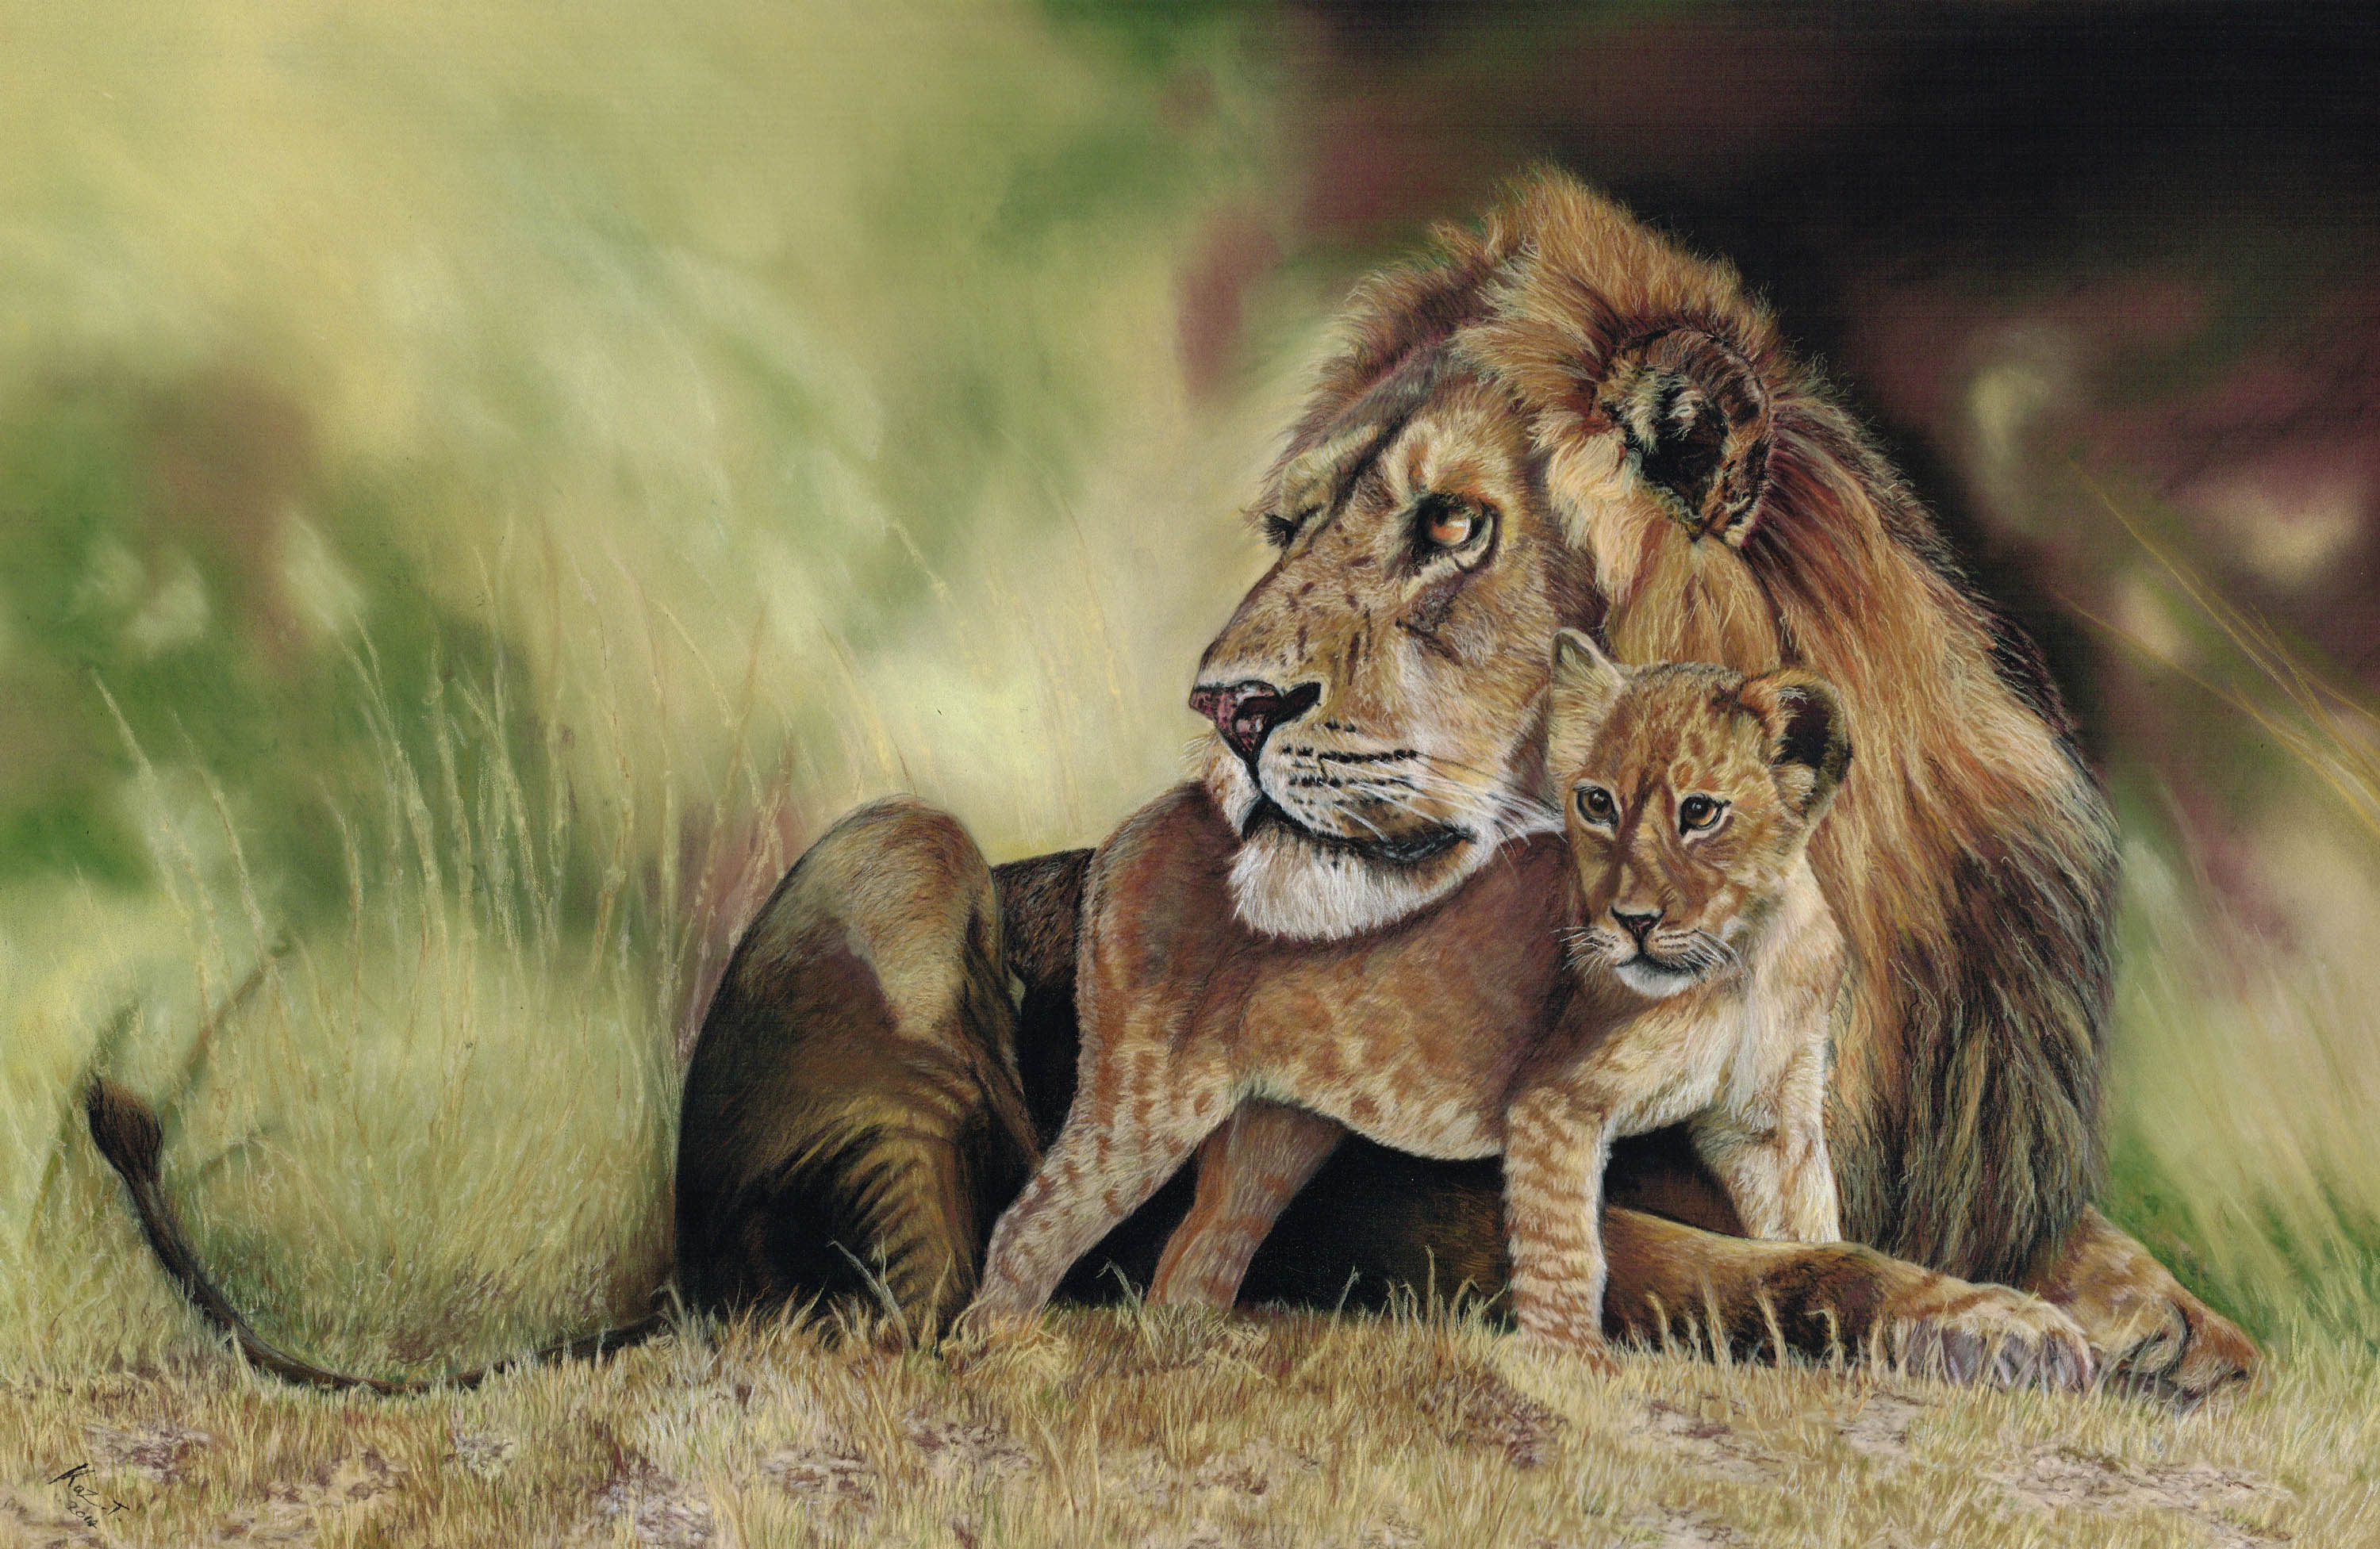 The Exquisite Wildlife Illustrations of Artist Kaz Turner